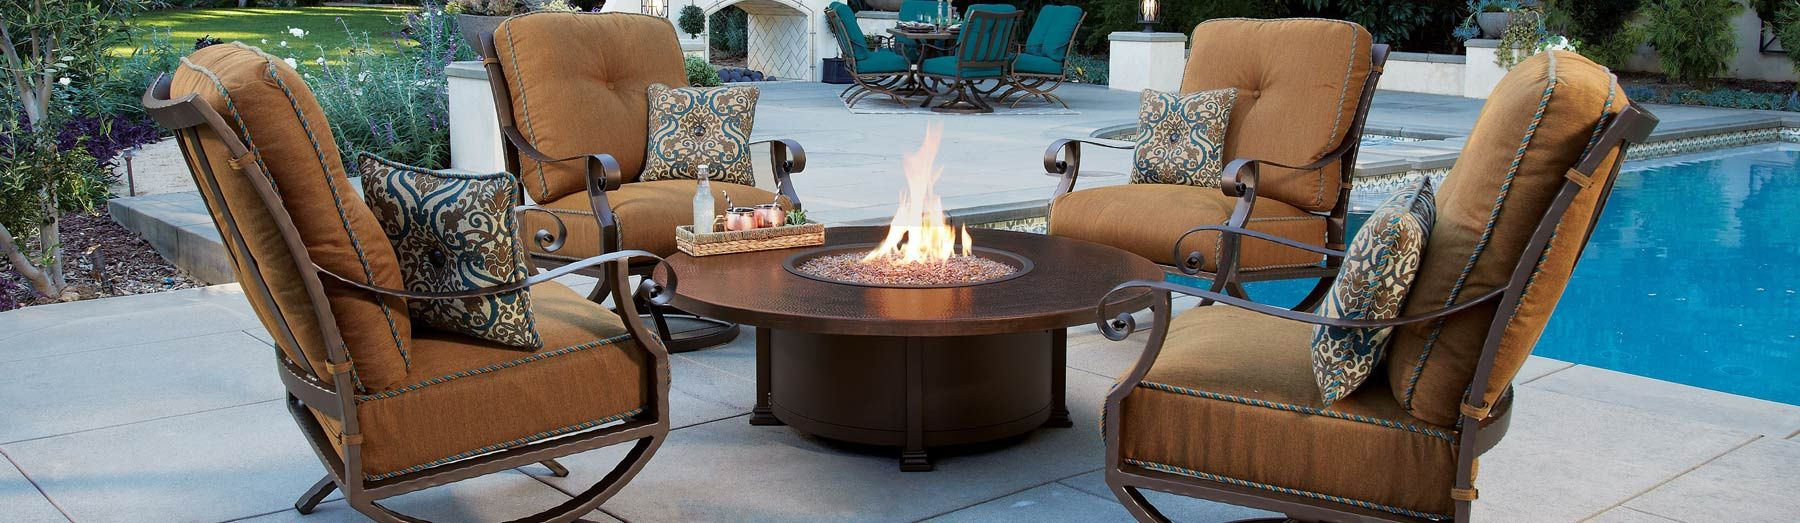 Superbe Outdoor Furniture Nashville Tn   Cool Apartment Furniture Check More At  Http://cacophonouscreations